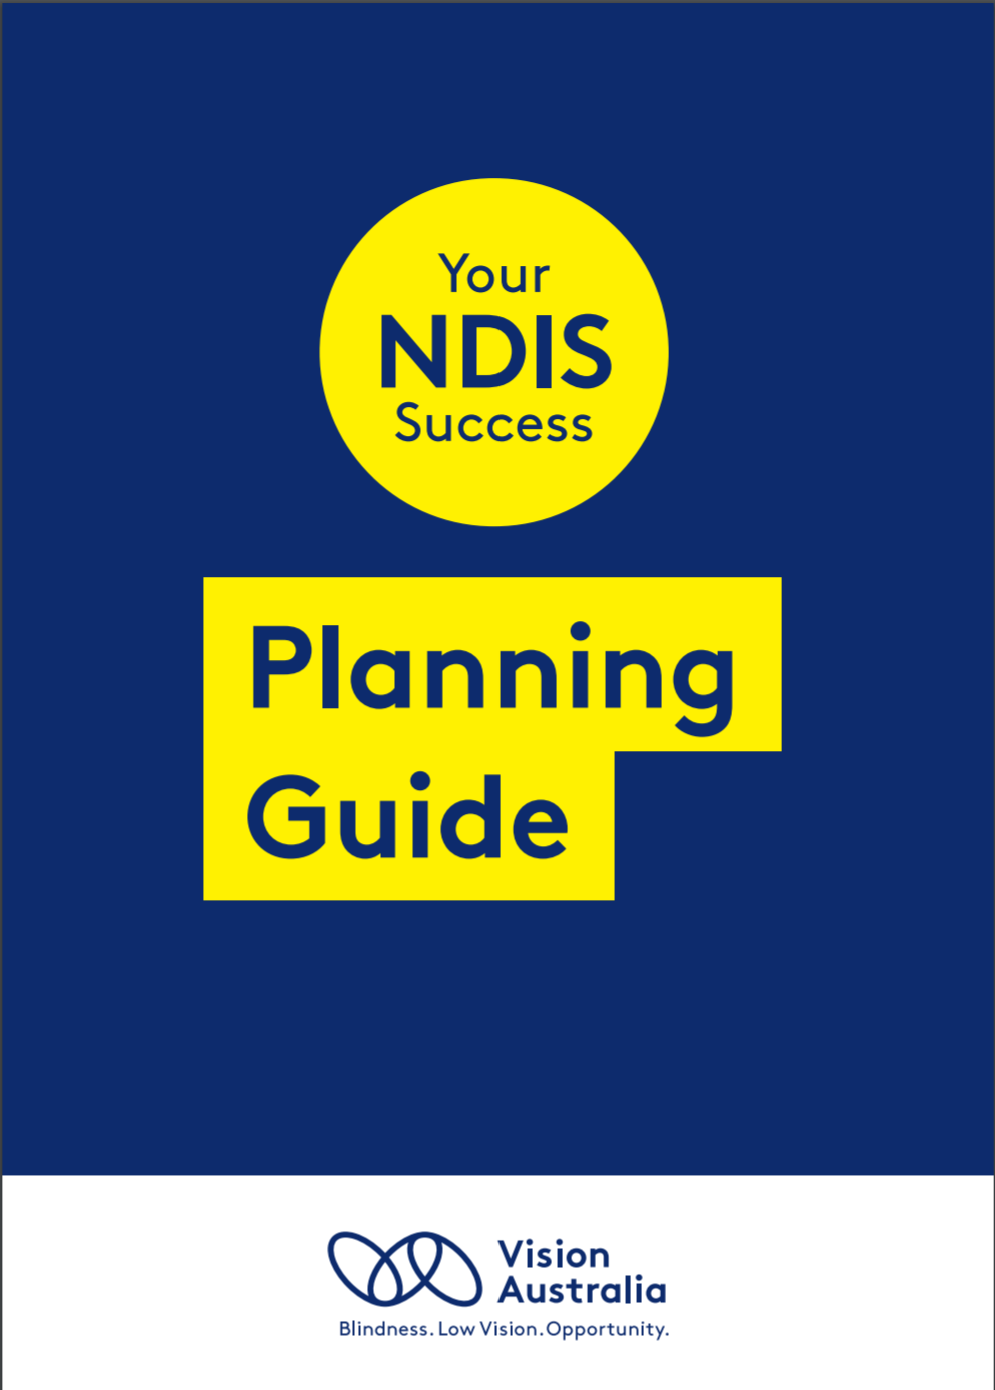 Front cover of the 'Your NDIS Success: Planning Guide' booklet